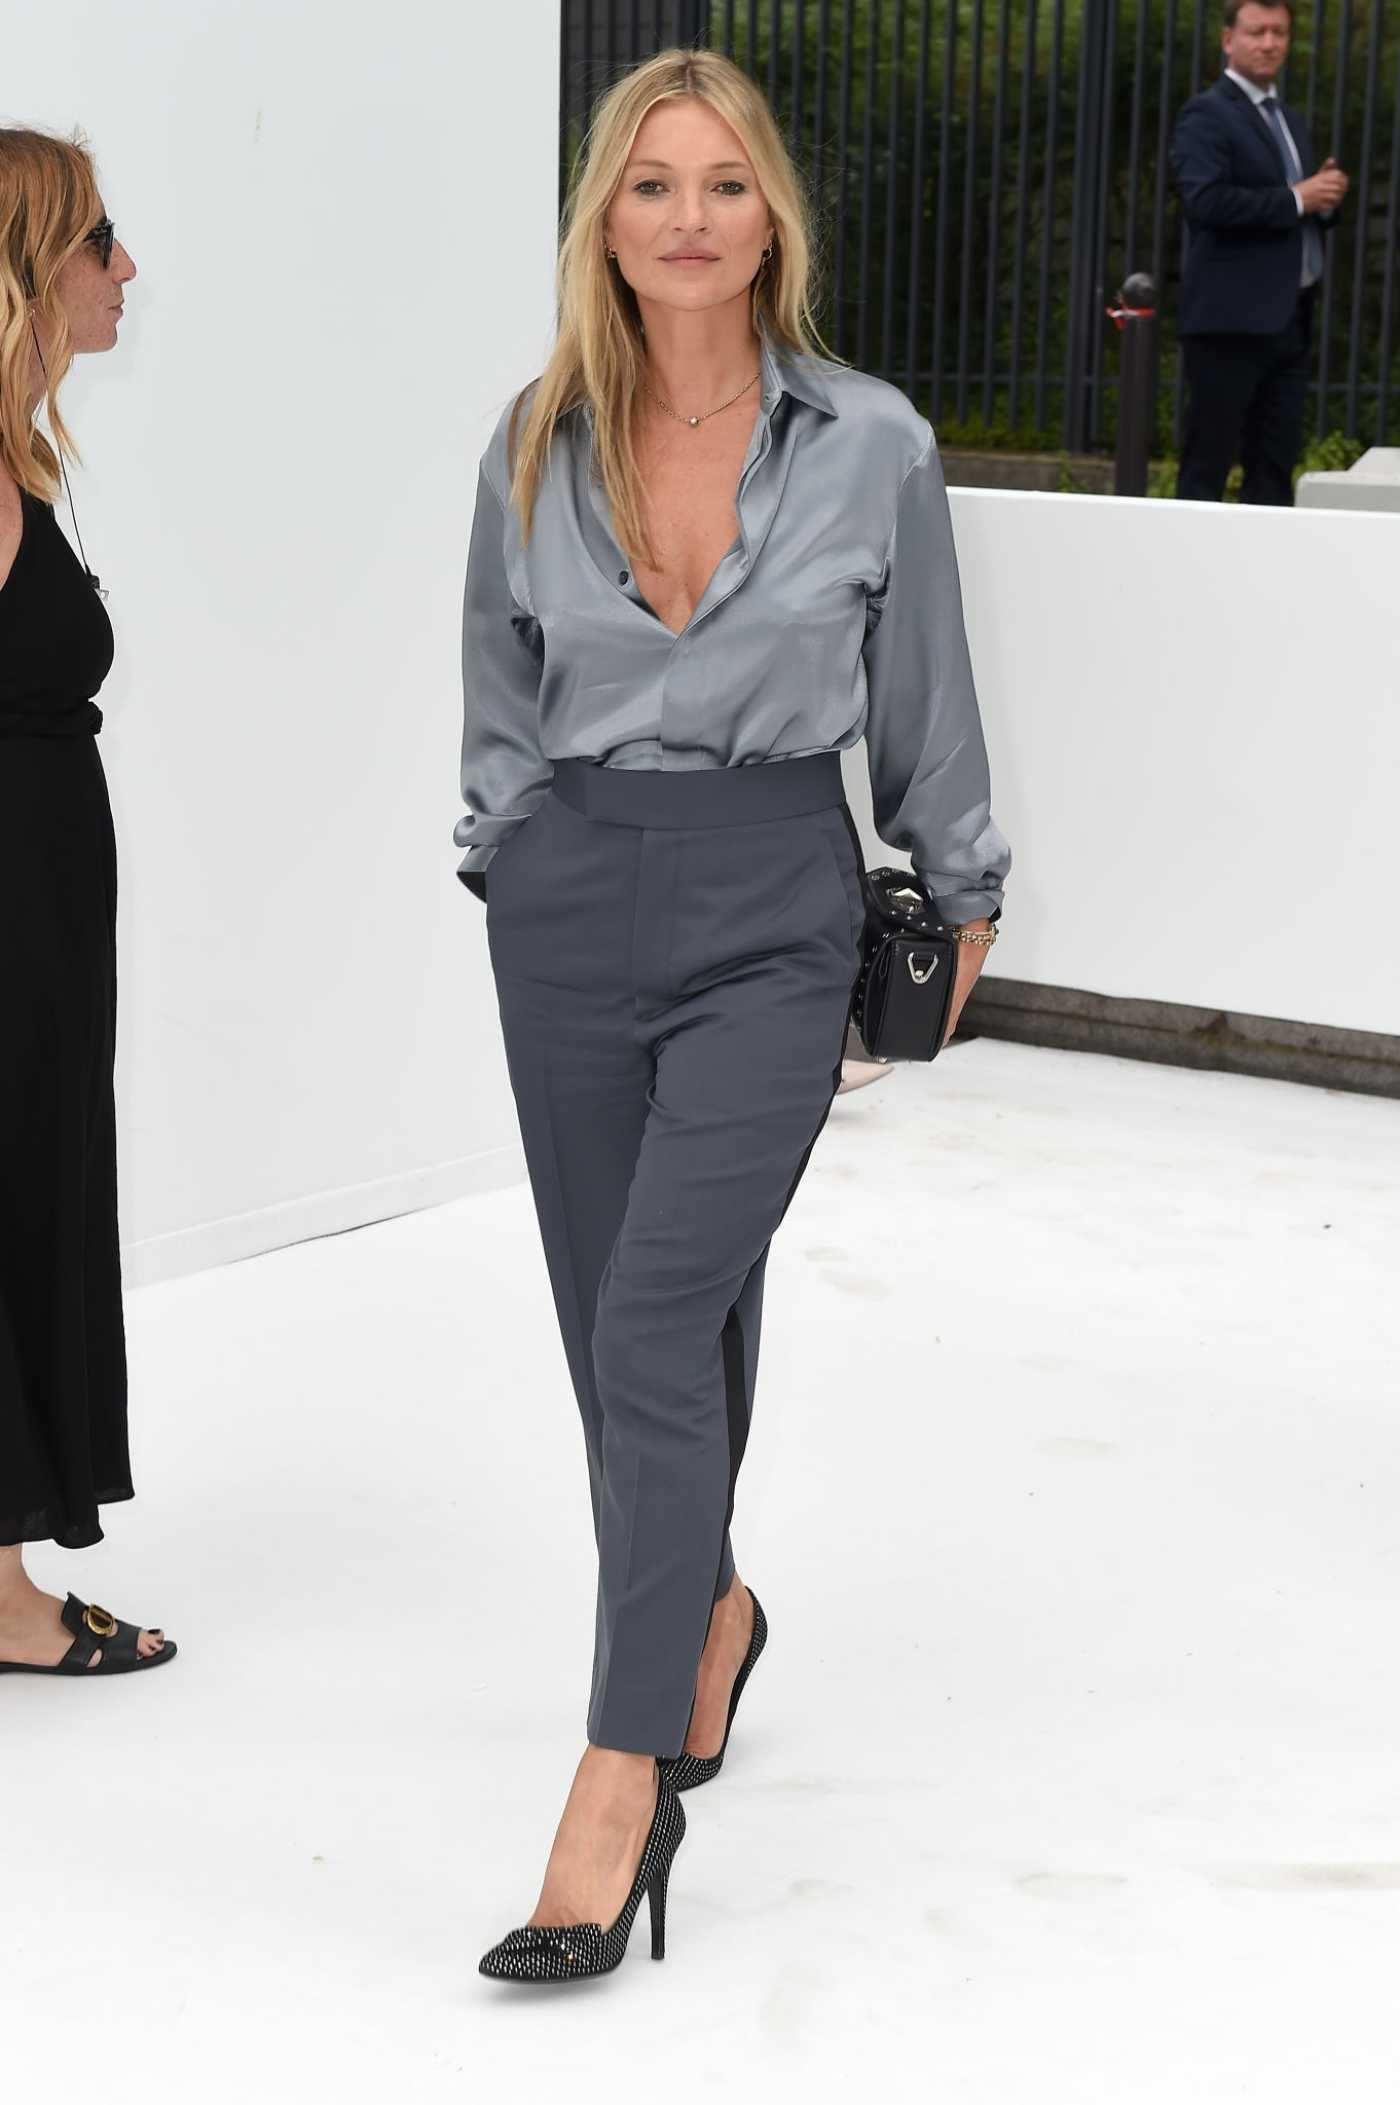 Kate Moss Attends 2020 Dior Homme Menswear Spring Summer Show in Paris 06/21/2019